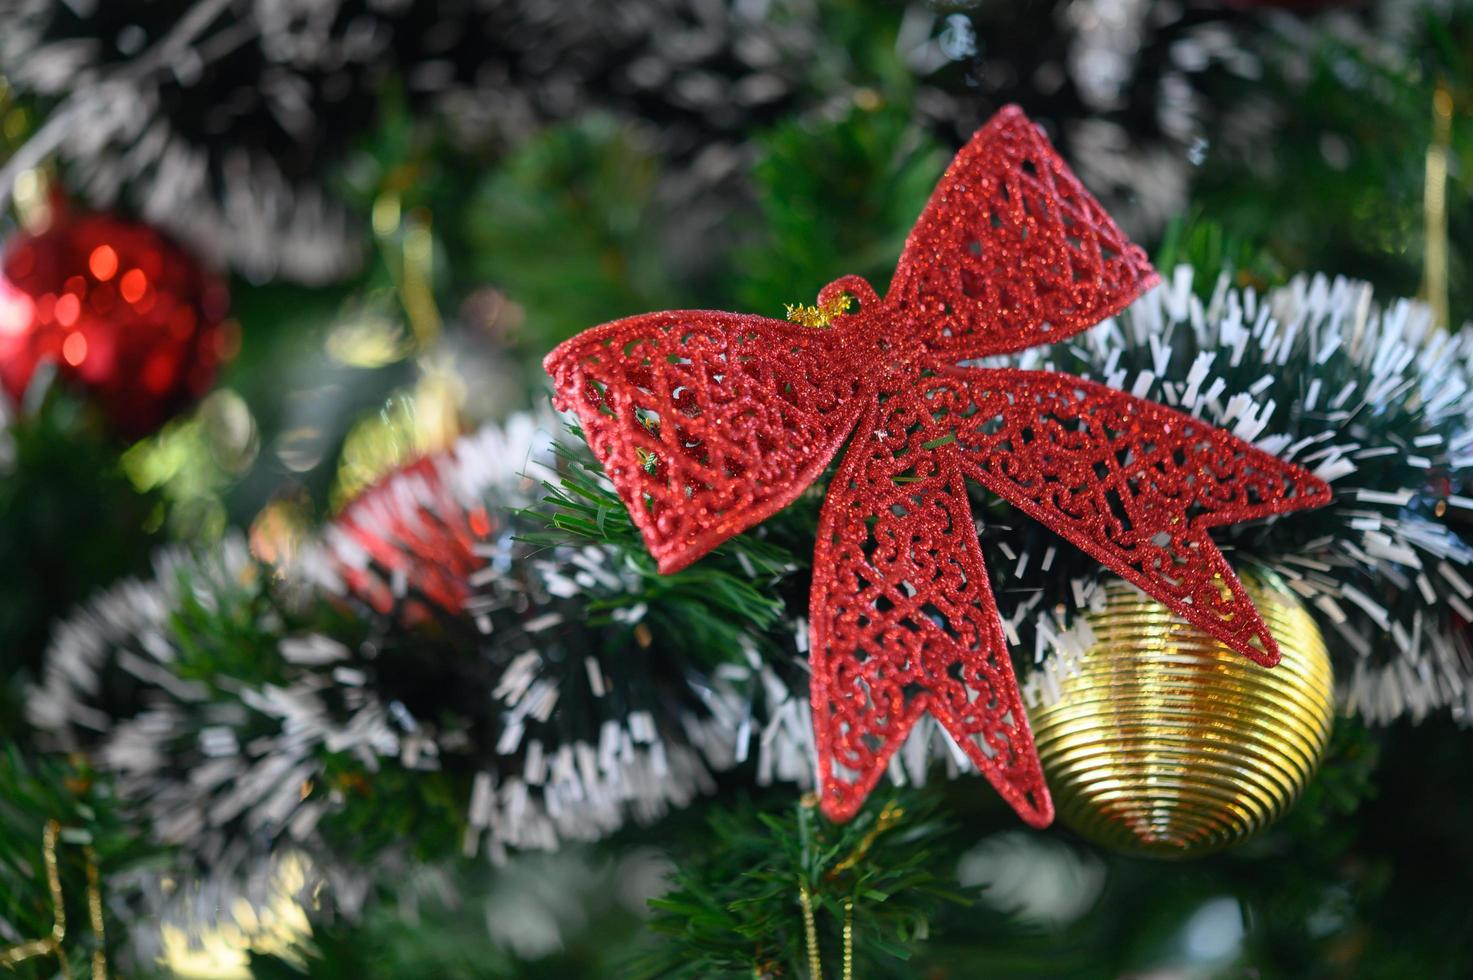 Close-up of a red bow on a Christmas tree photo